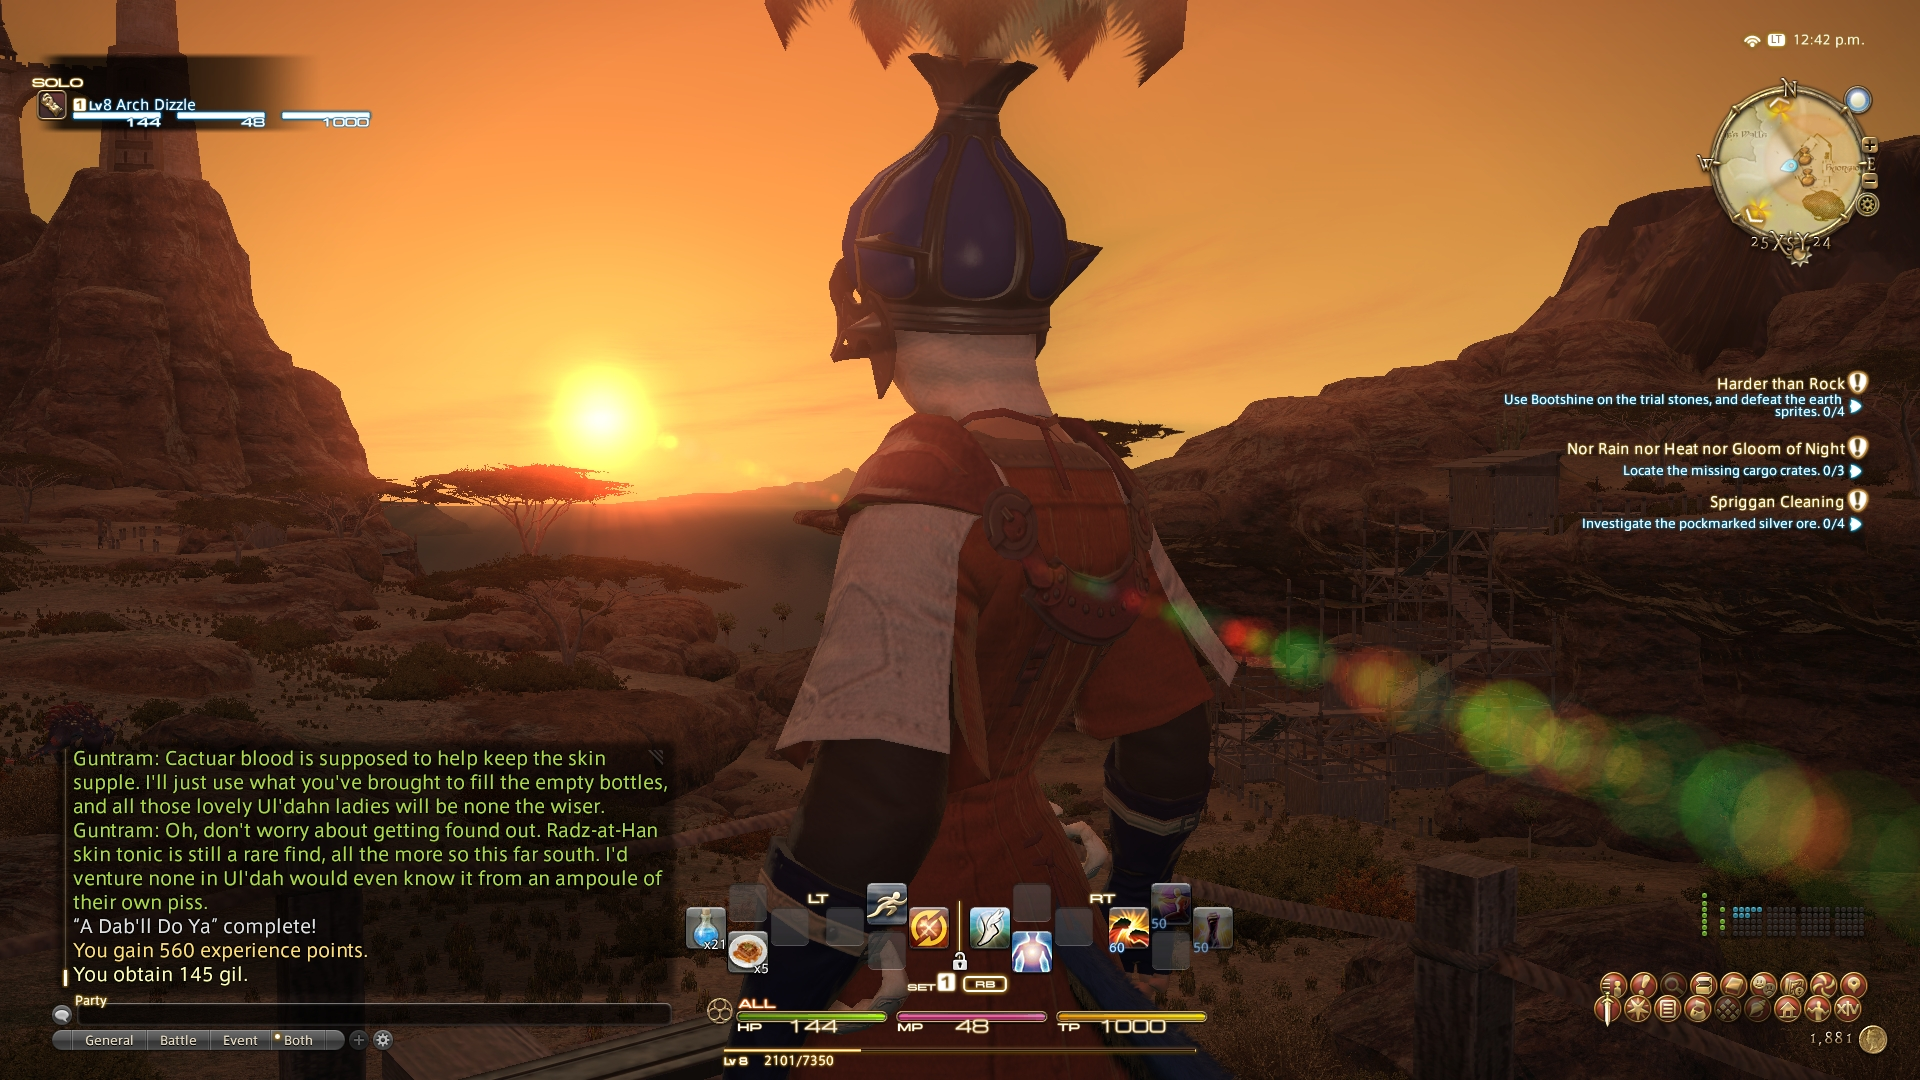 archdizzle ffxiv limsa through tonight well screenshots lifted phase beta